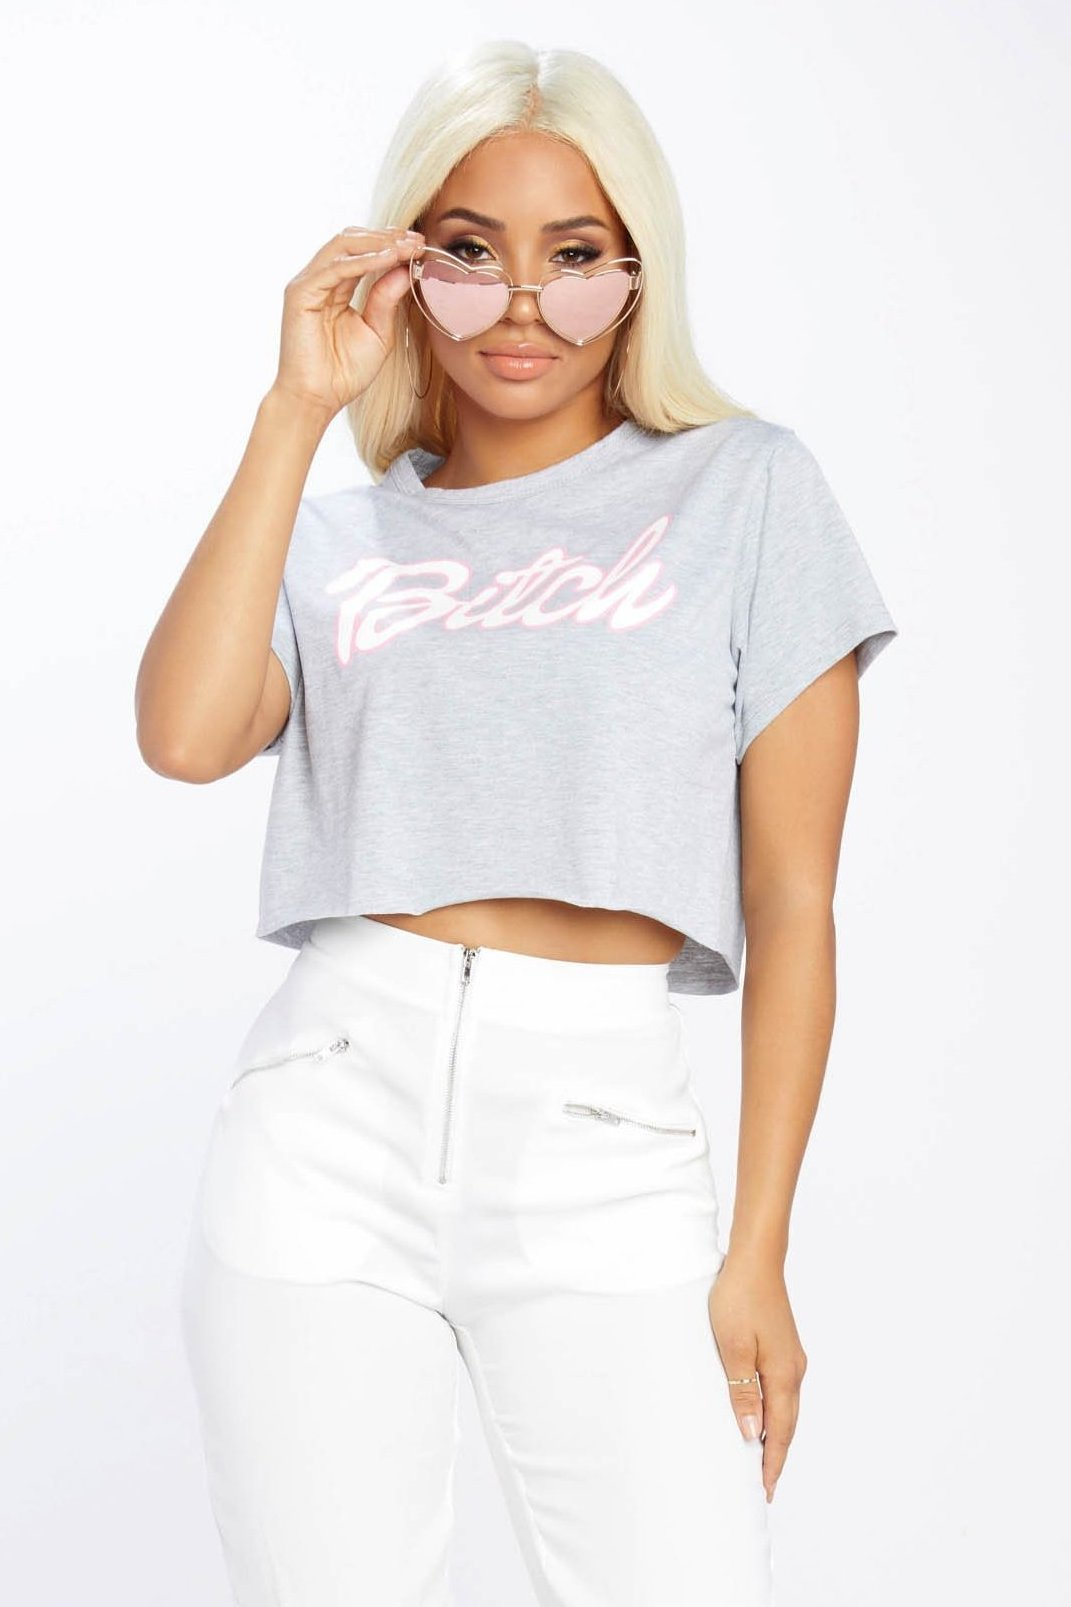 Bitch Crop Top